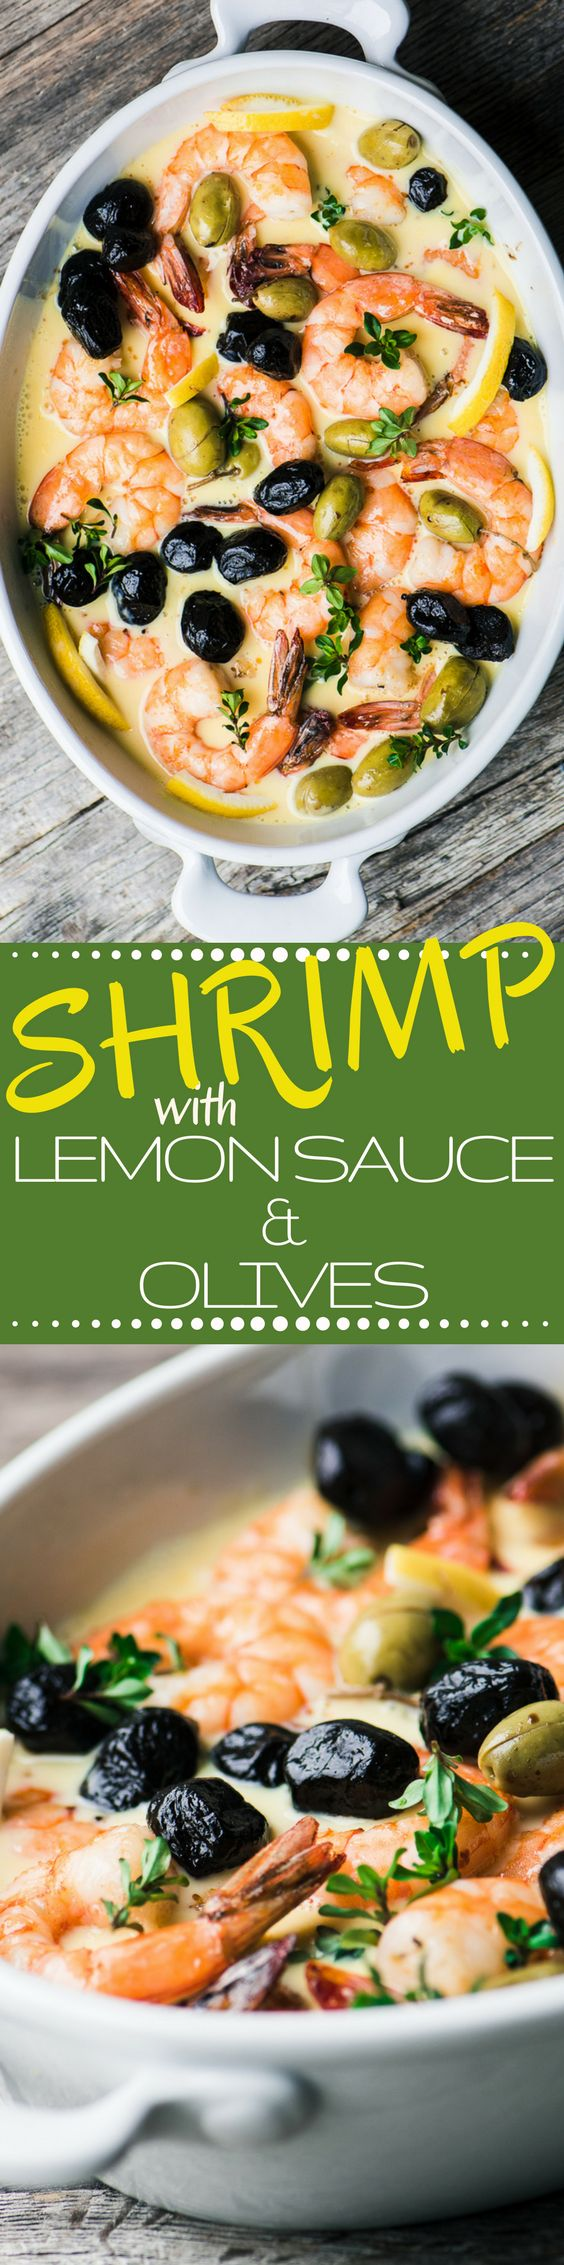 Shrimp in Lemon Sauce with Olives ~ this 30 minute meal will transport you to the Greek Isles with its silky lemon sauce and rich, briny olives. The health news on the Mediterranean Diet just keeps getting better and better ~ lucky us!